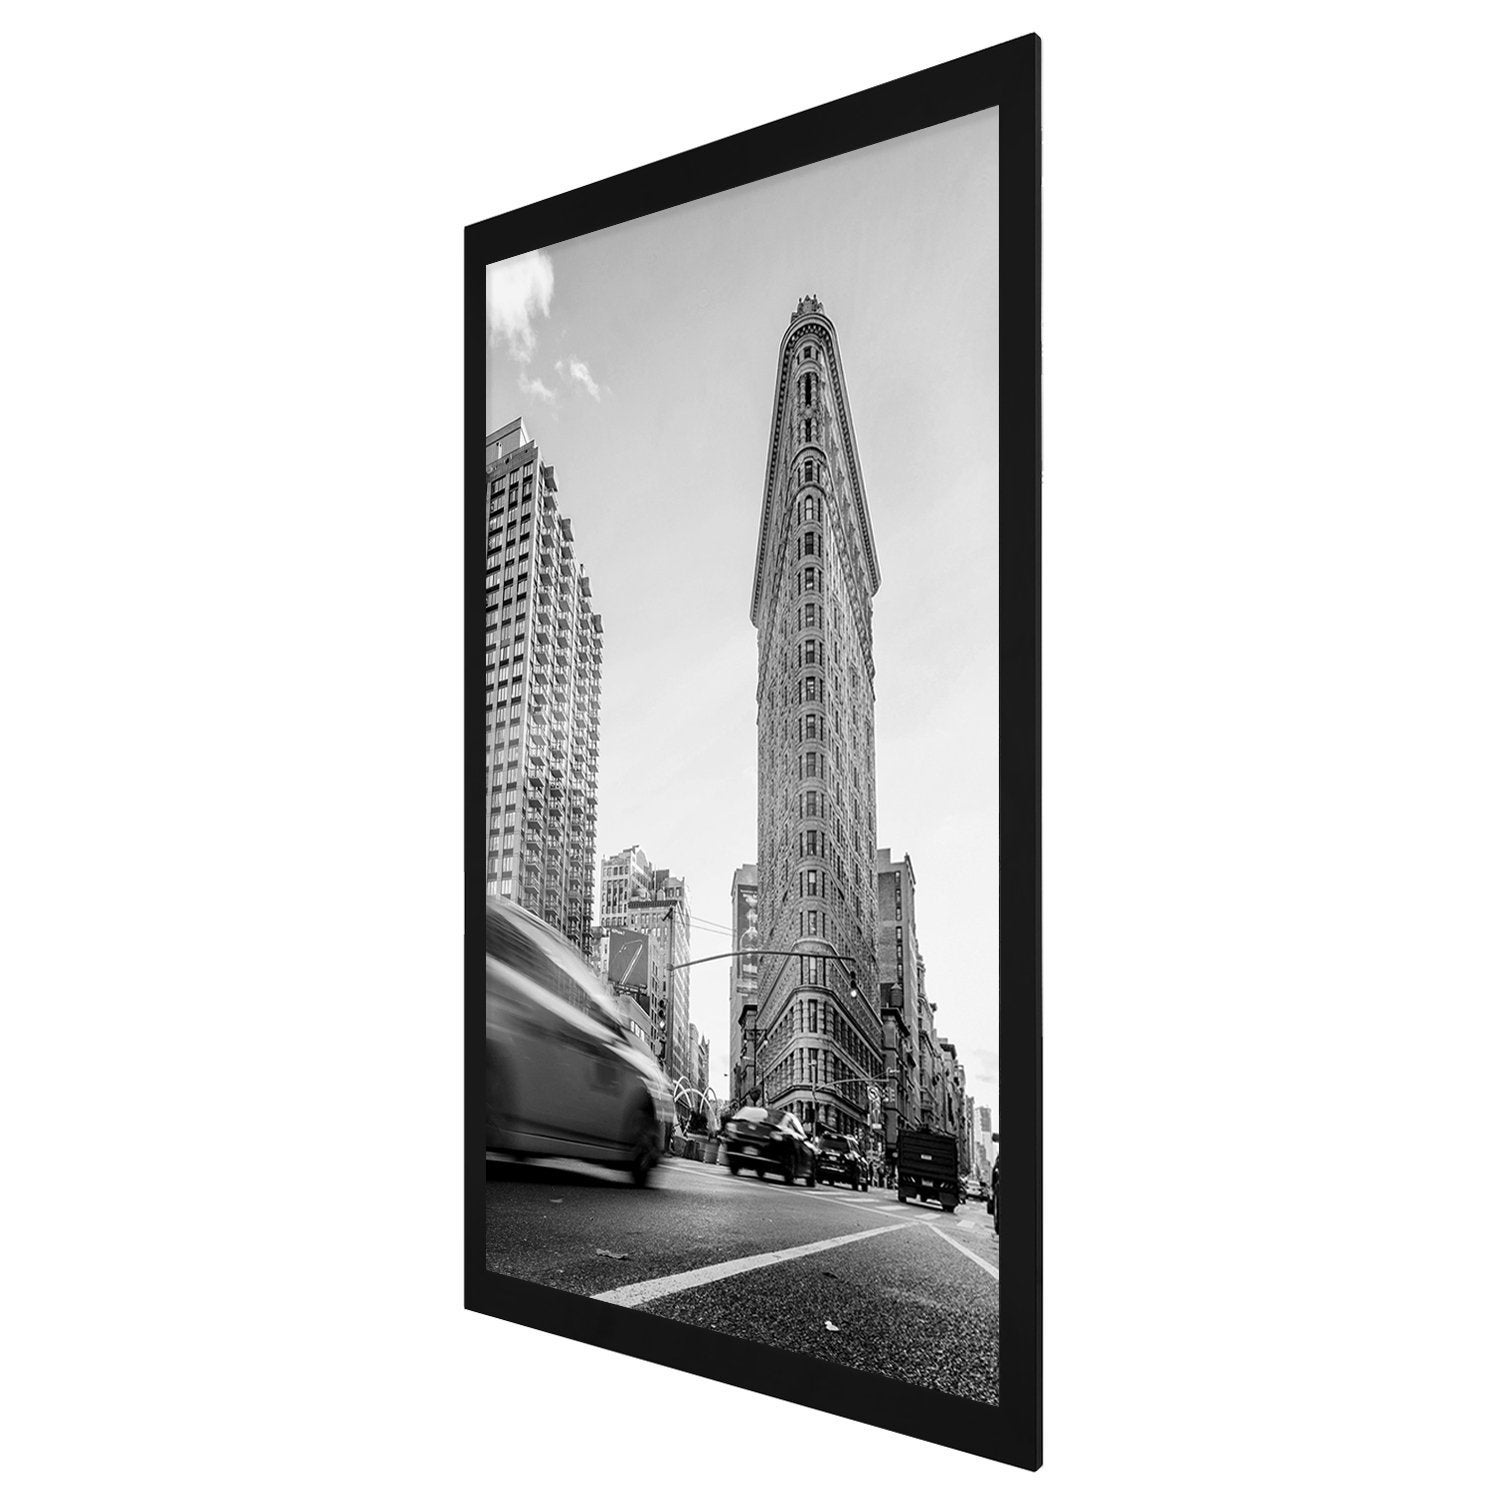 Shop 24x36 Black Picture Frame 15 Wide Smooth Black Finish